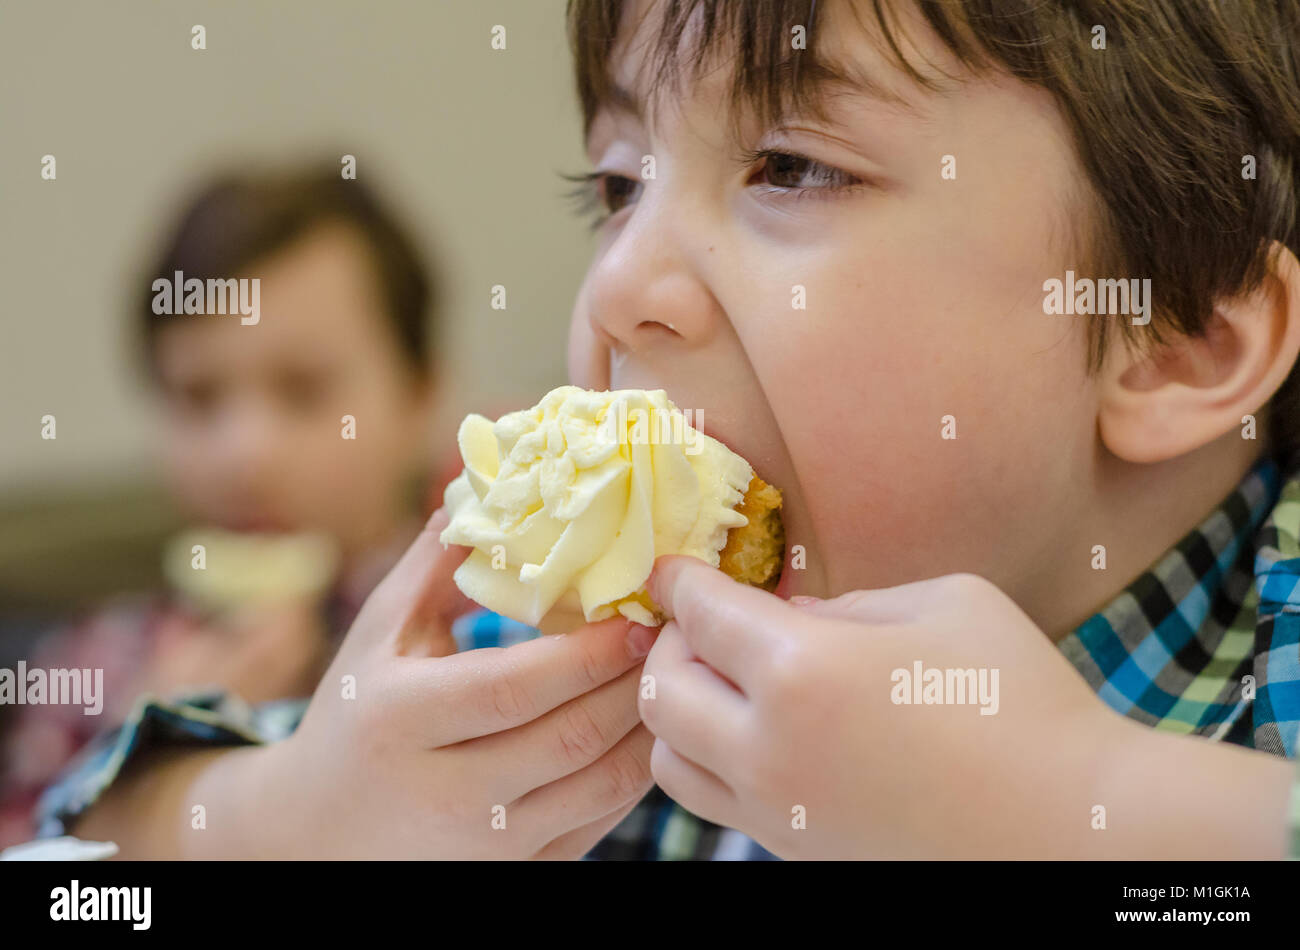 a-close-up-of-a-young-boy-eating-a-cupcake-M1GK1A.jpg